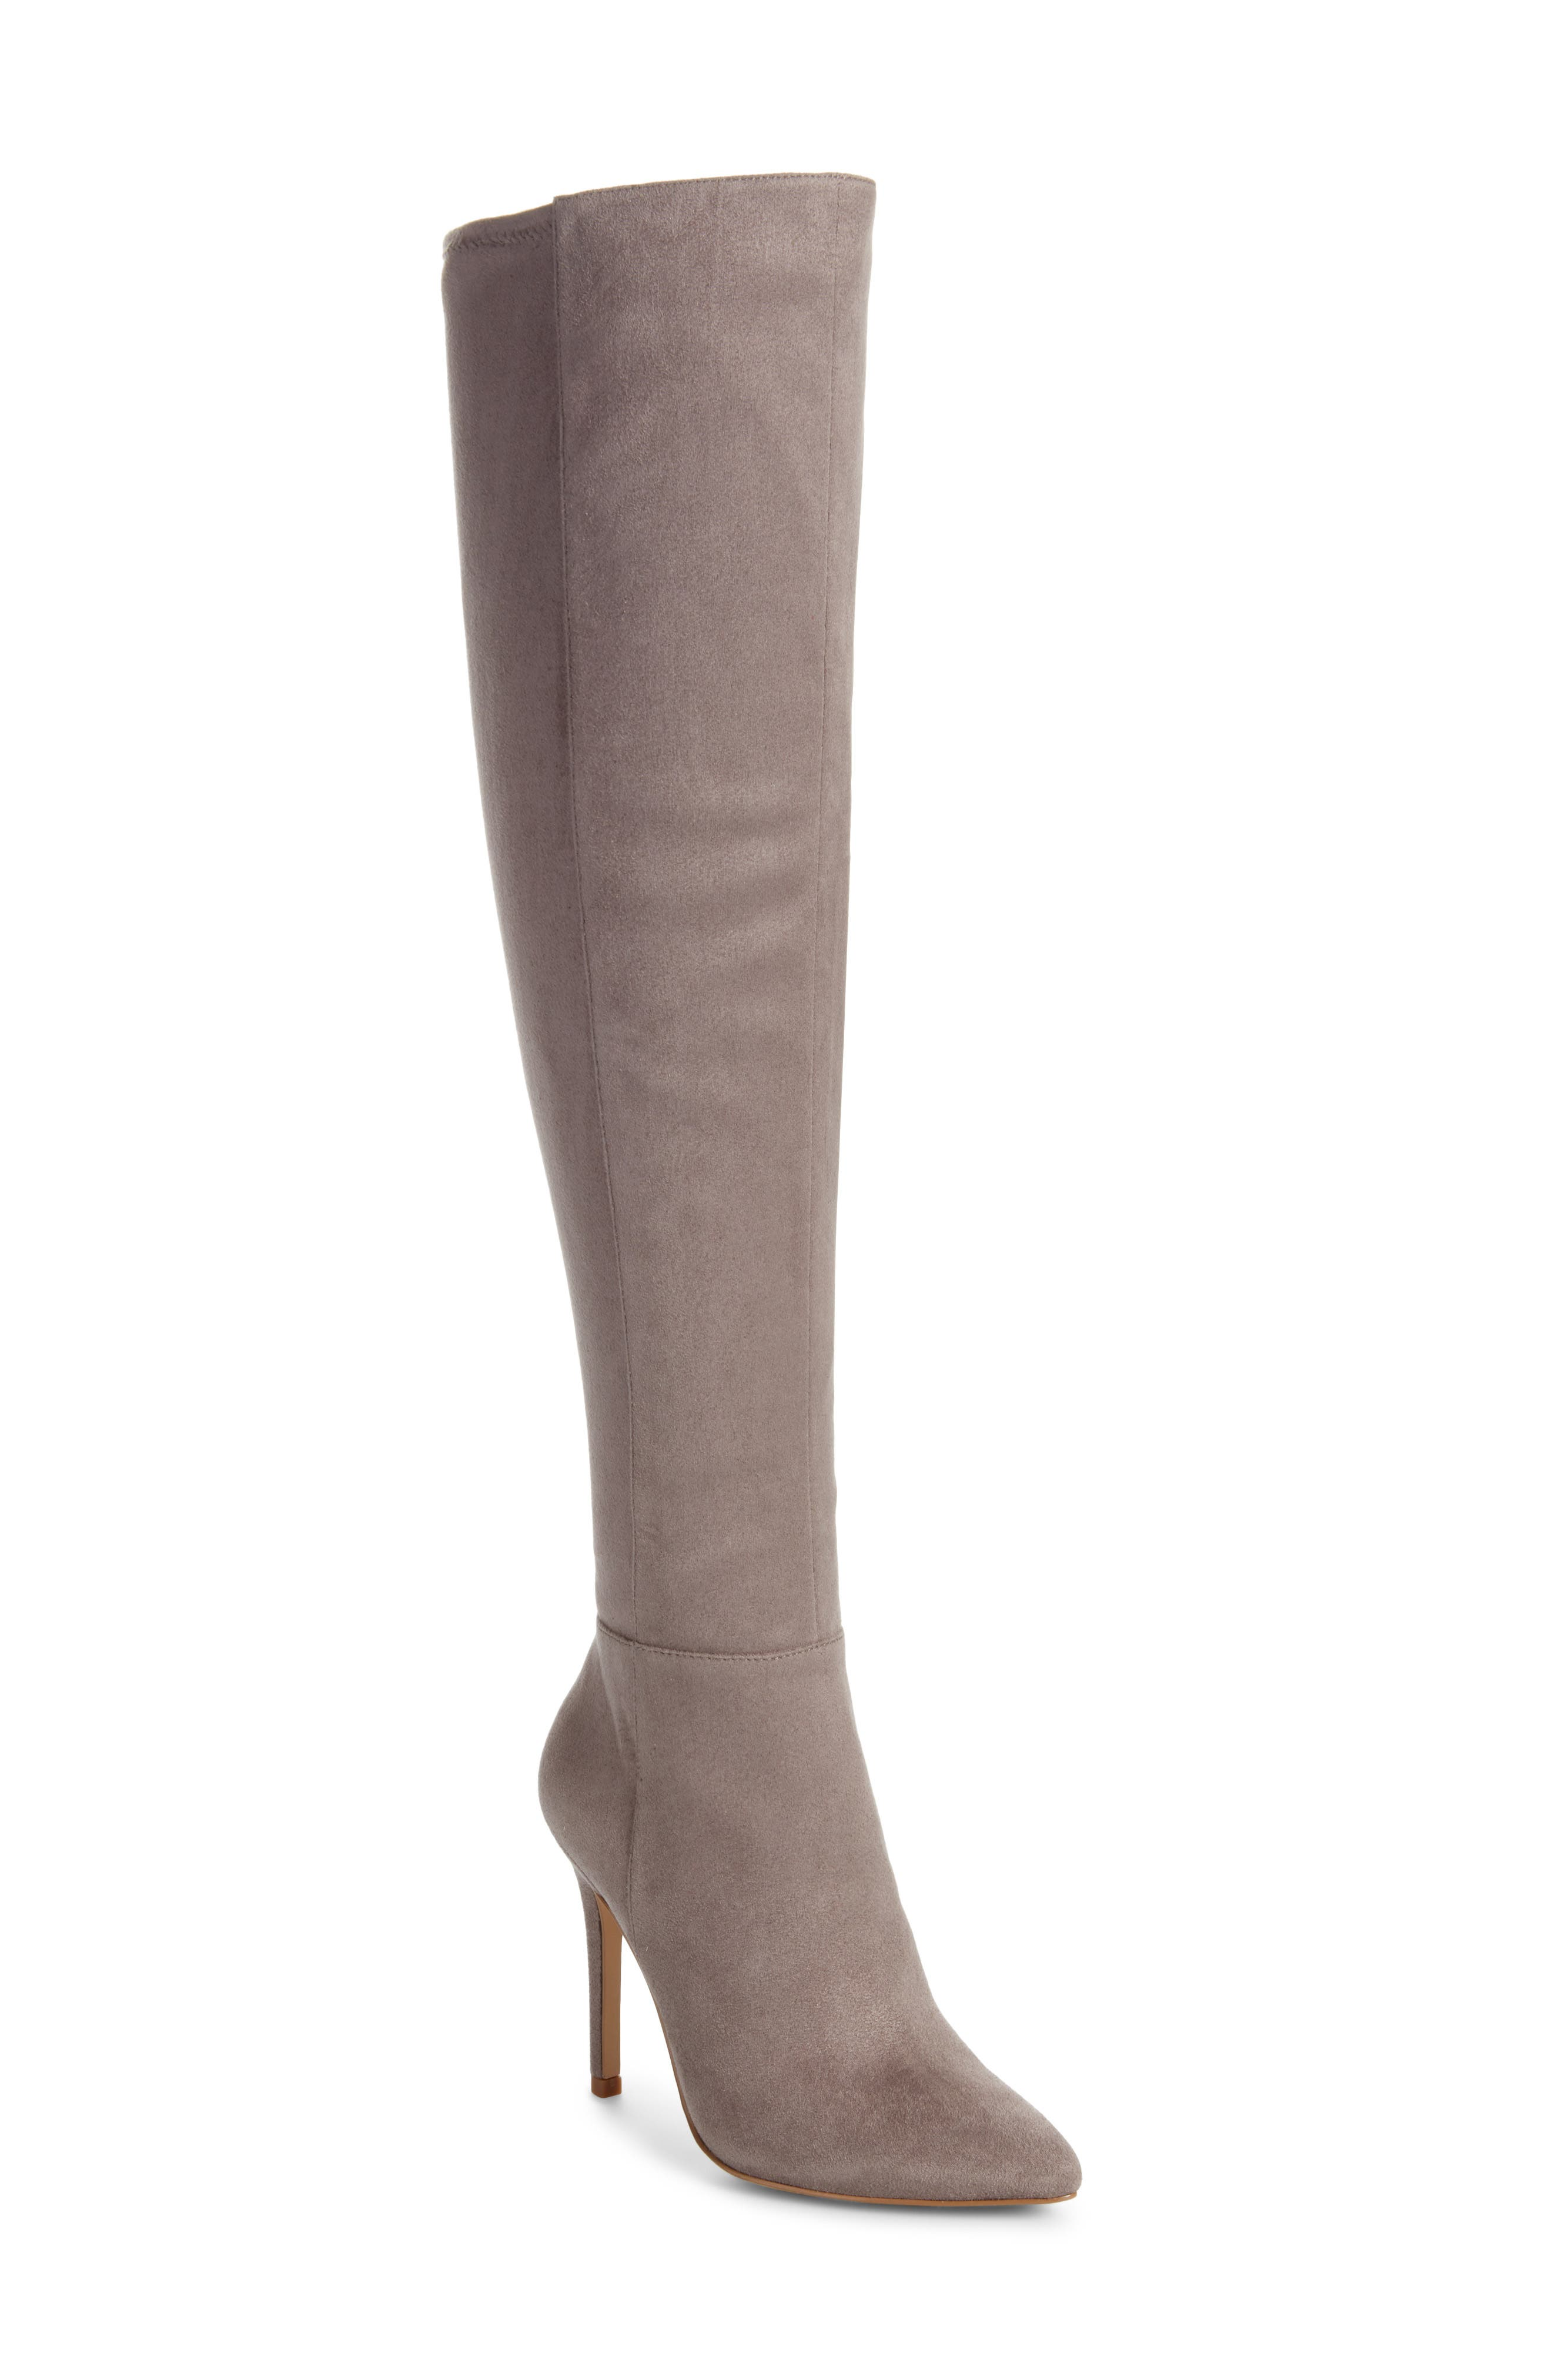 CHARLES BY CHARLES DAVID DEBUTANTE THIGH HIGH BOOT